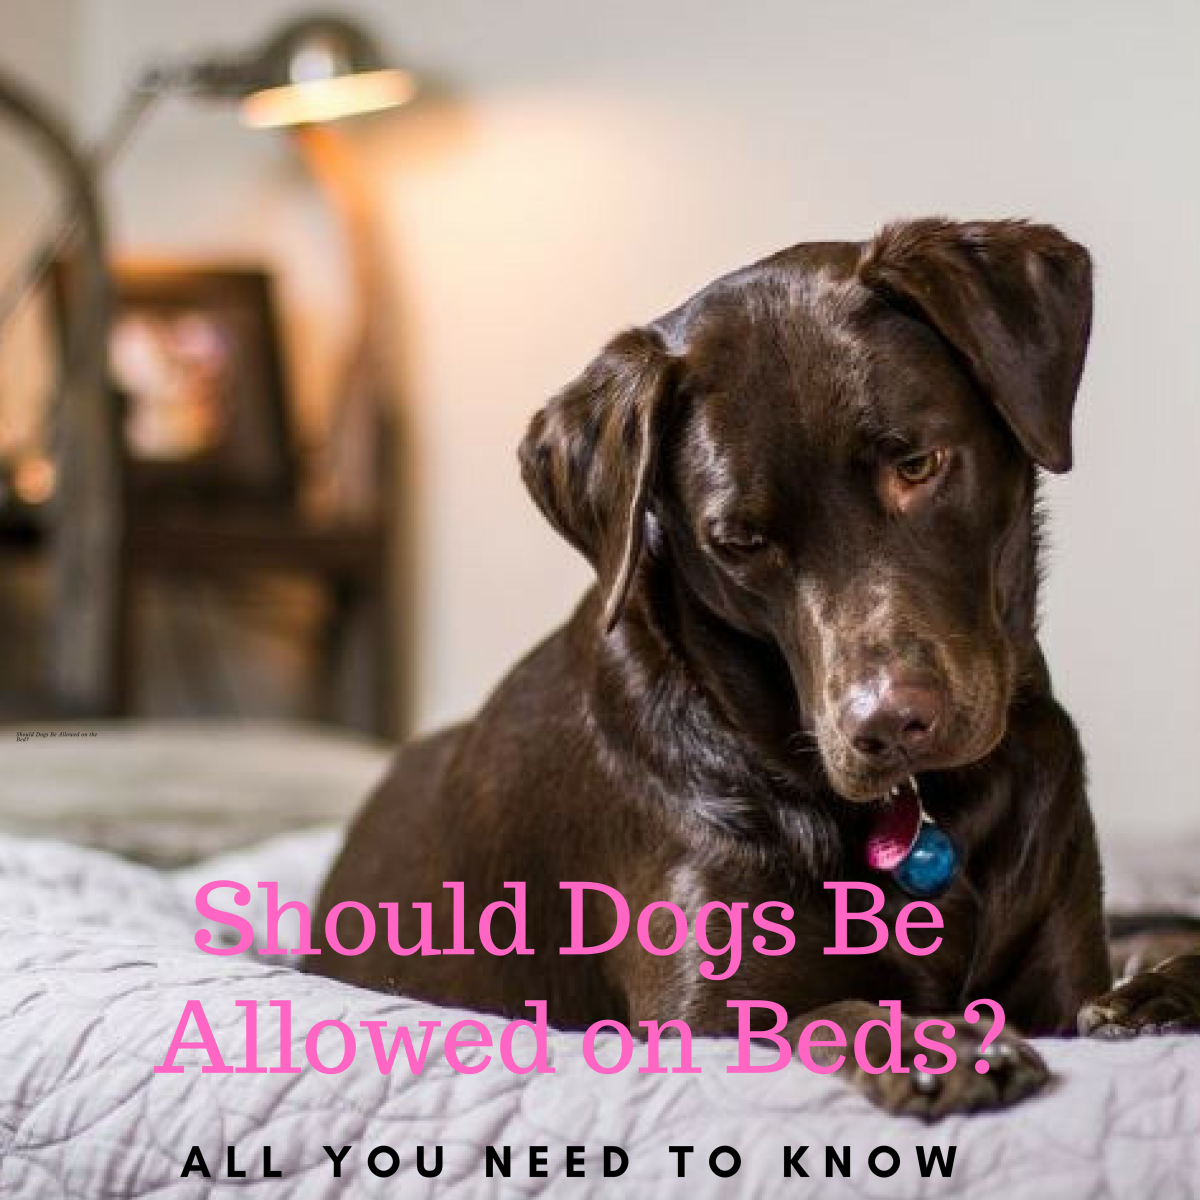 Should Dogs Be Allowed to Sleep in Your Bed? All You Need to Know